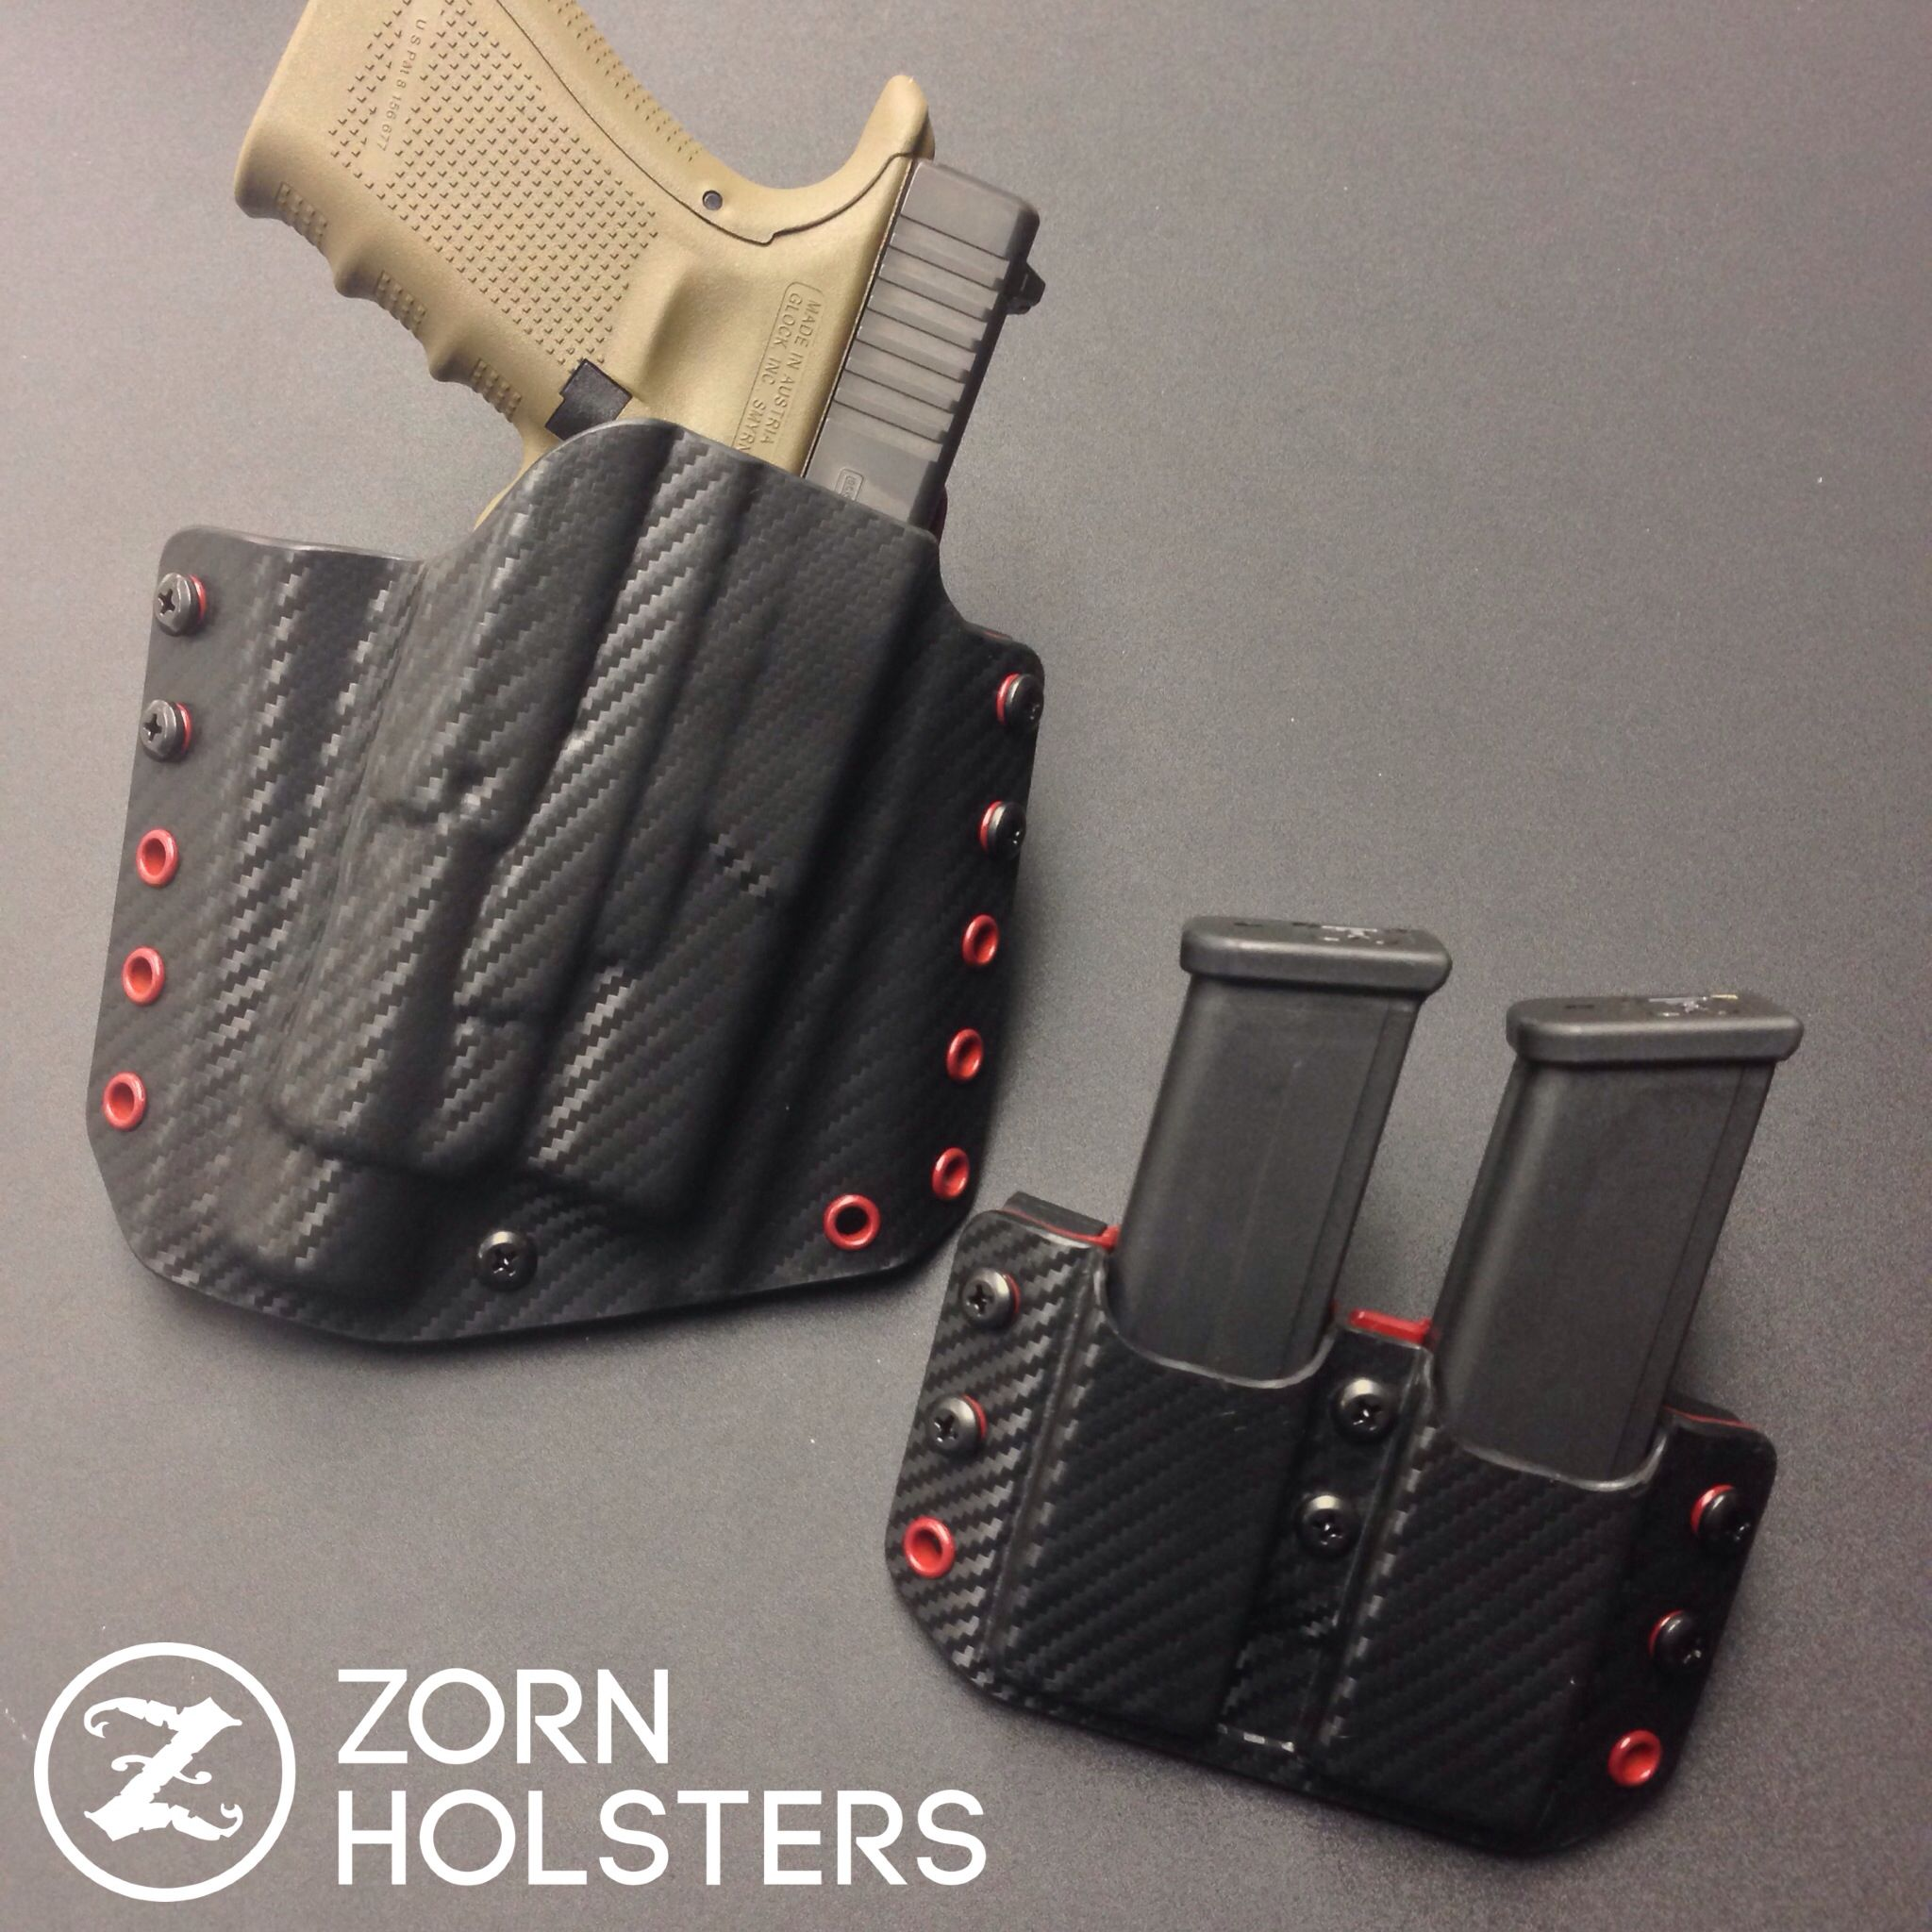 Glock Magazine Holder Trojan Holster and double magazine pouch for the Glock 41 with a 33